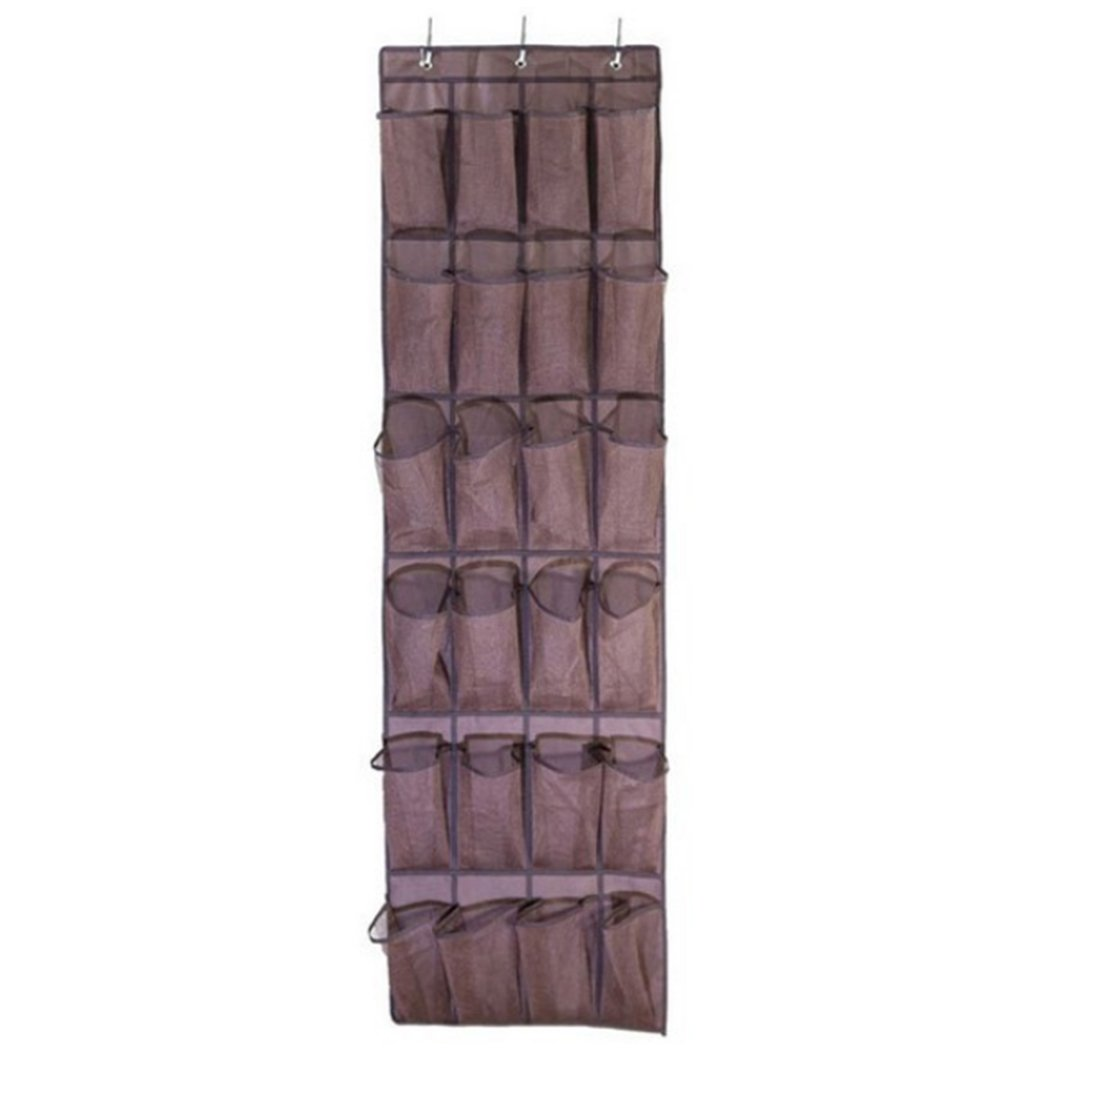 Closet Bag,Hmane 24 Pockets Hanging Over Door Holder Shoes Nonwoven Fabric Mesh Organizer Storage Wall Closet Bag - Brown